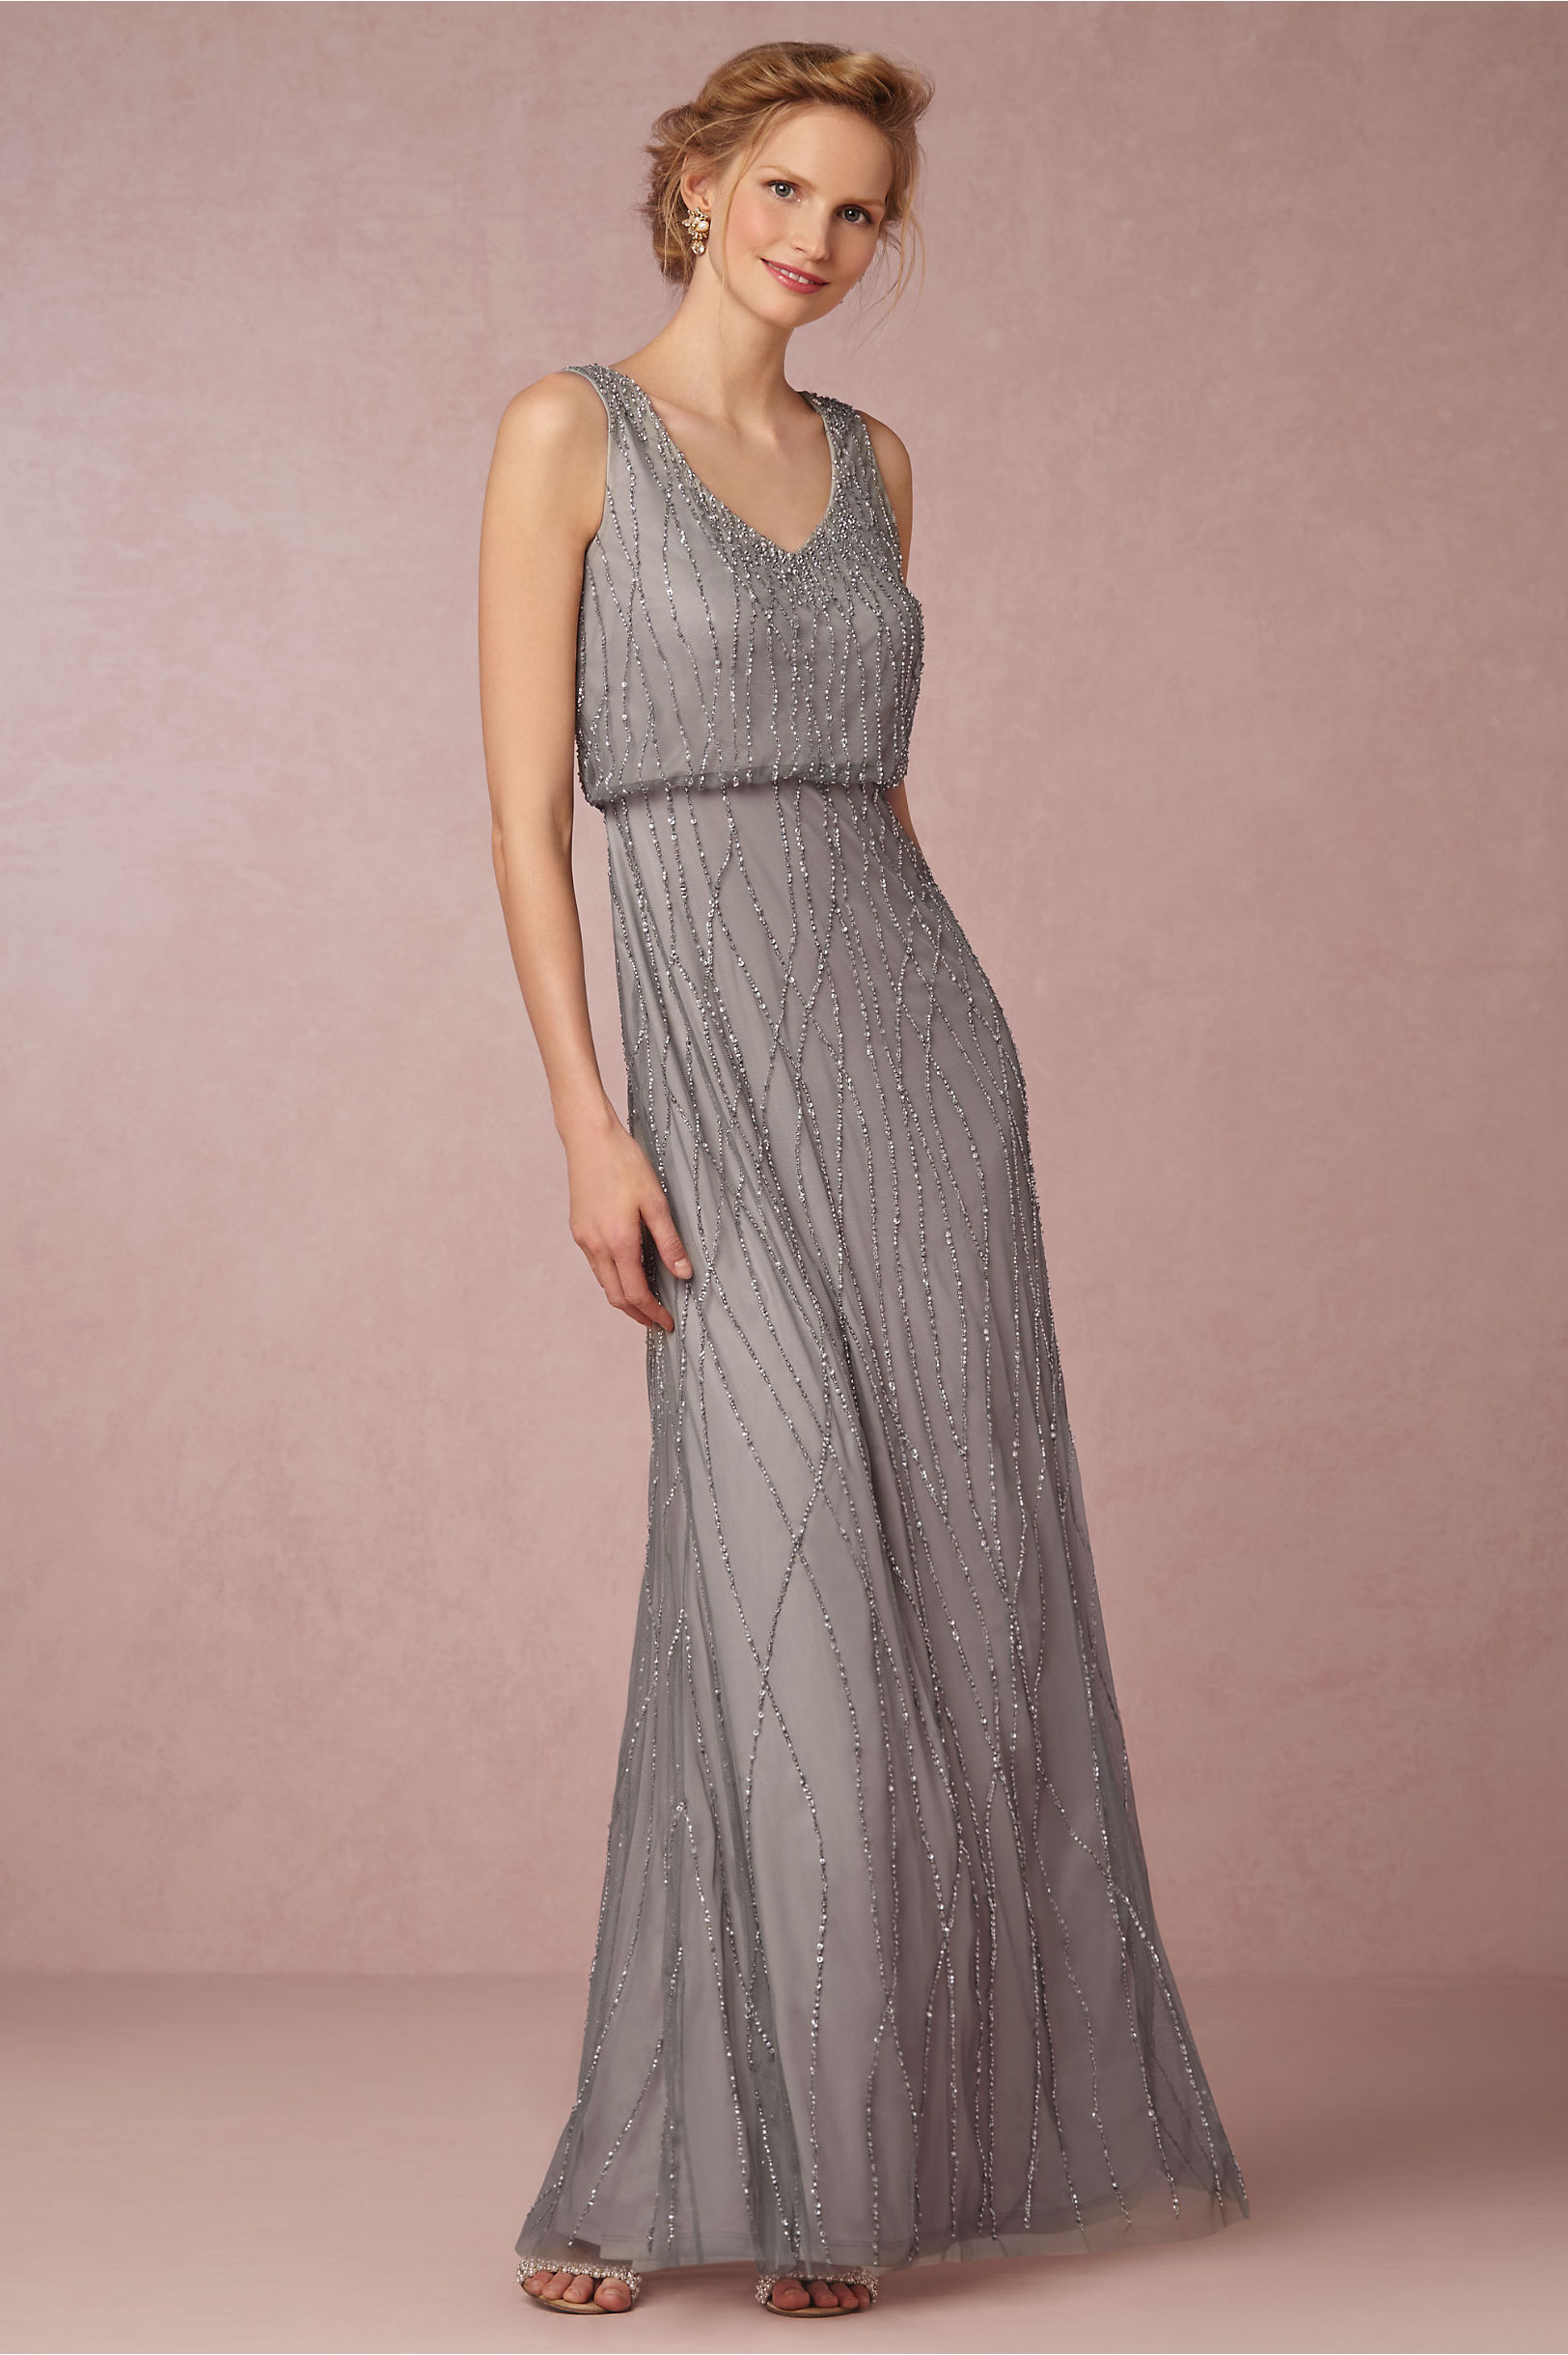 Brooklyn dress in bridal party bhldn slate heather brooklyn dress bhldn ombrellifo Choice Image